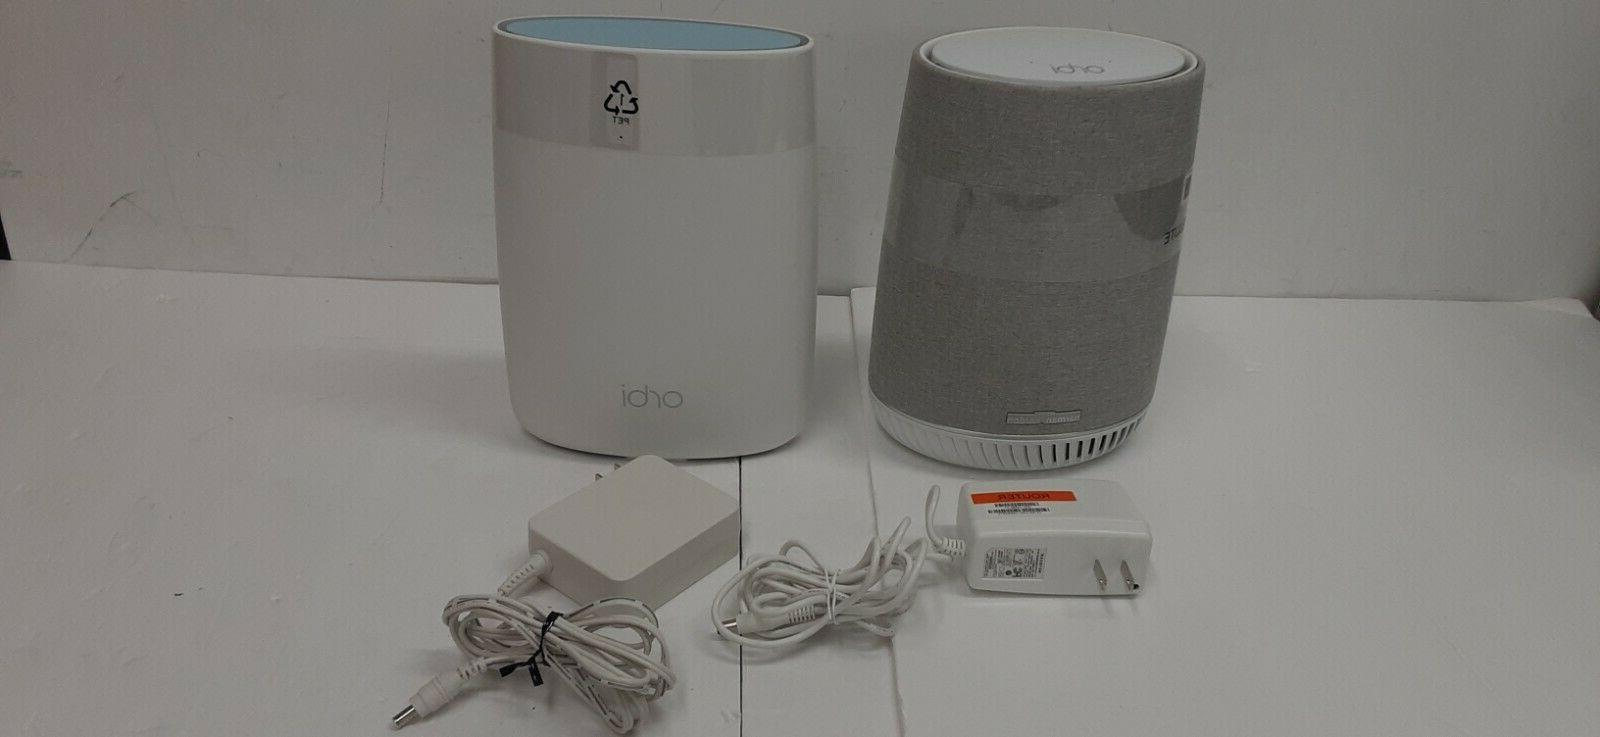 orbi voice whole home mesh wifi system